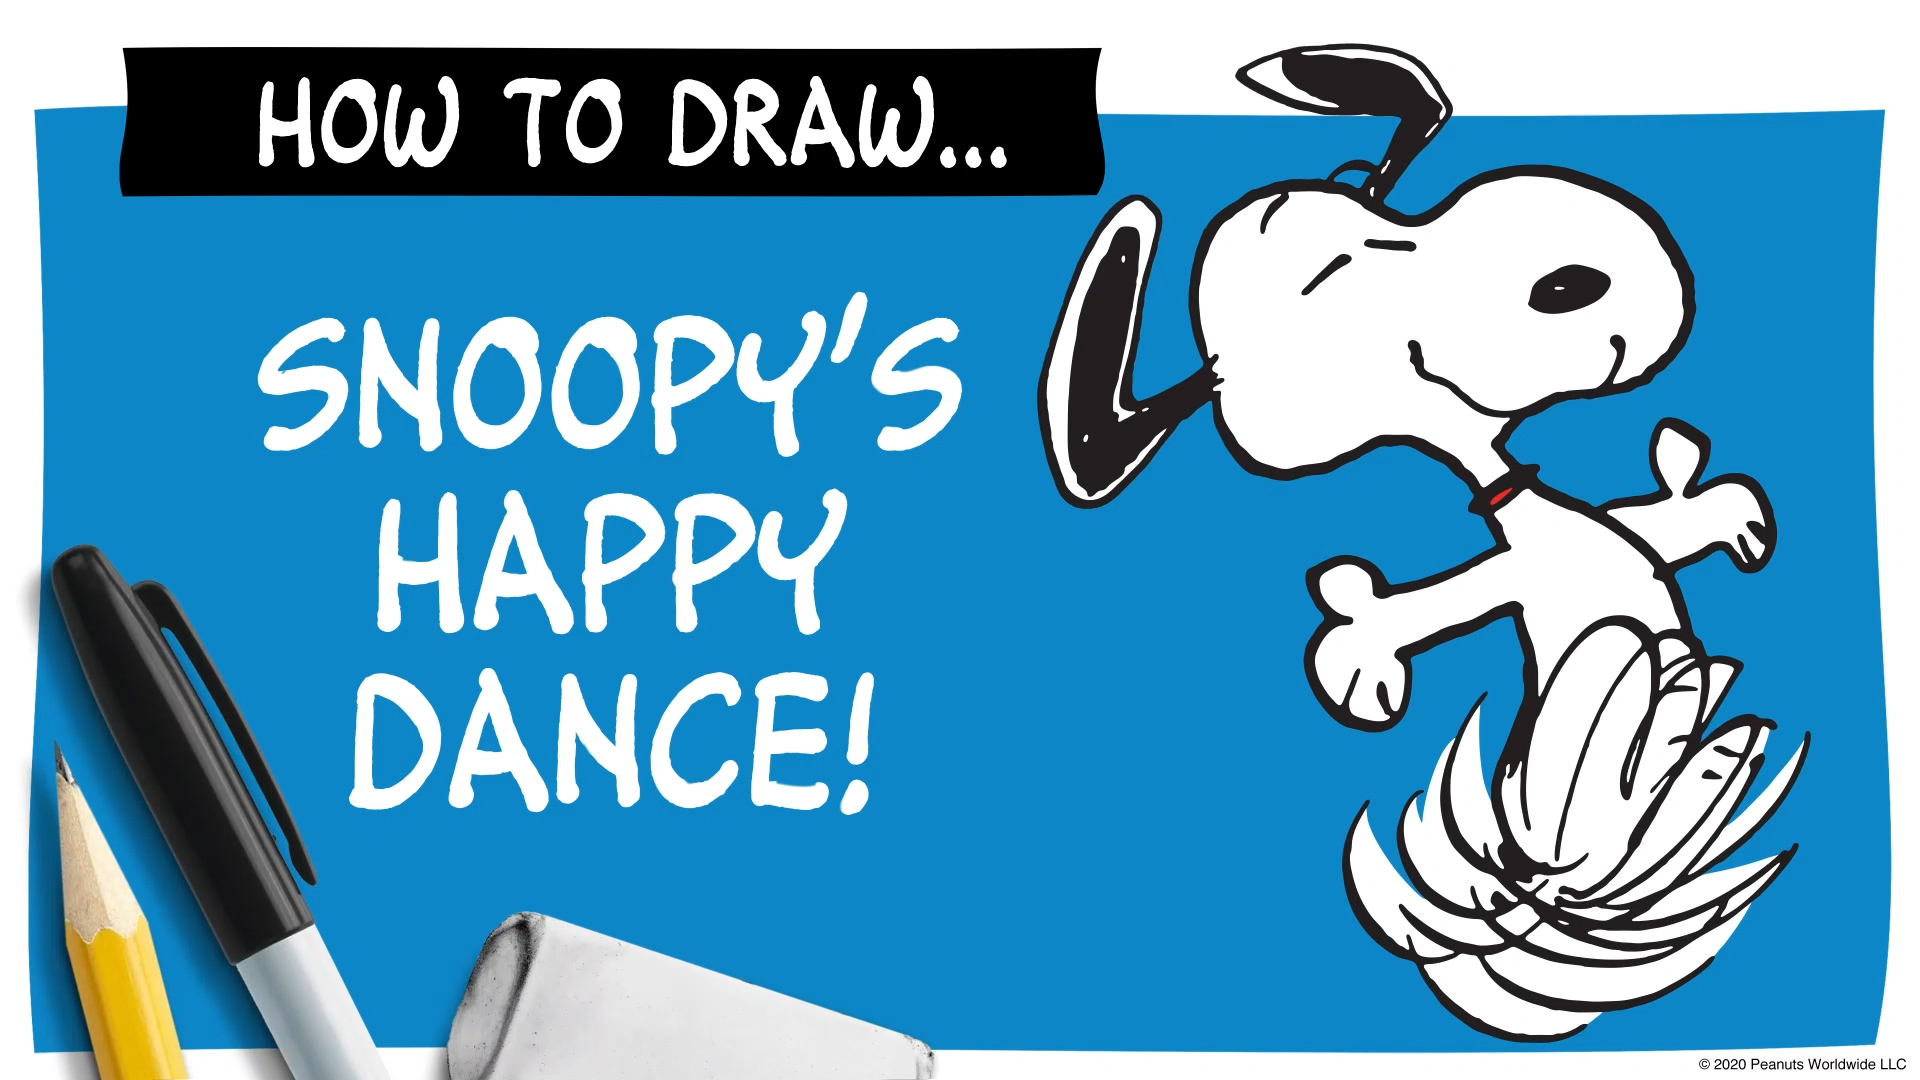 A black and white beagle dancing happily next to a pen and pencil